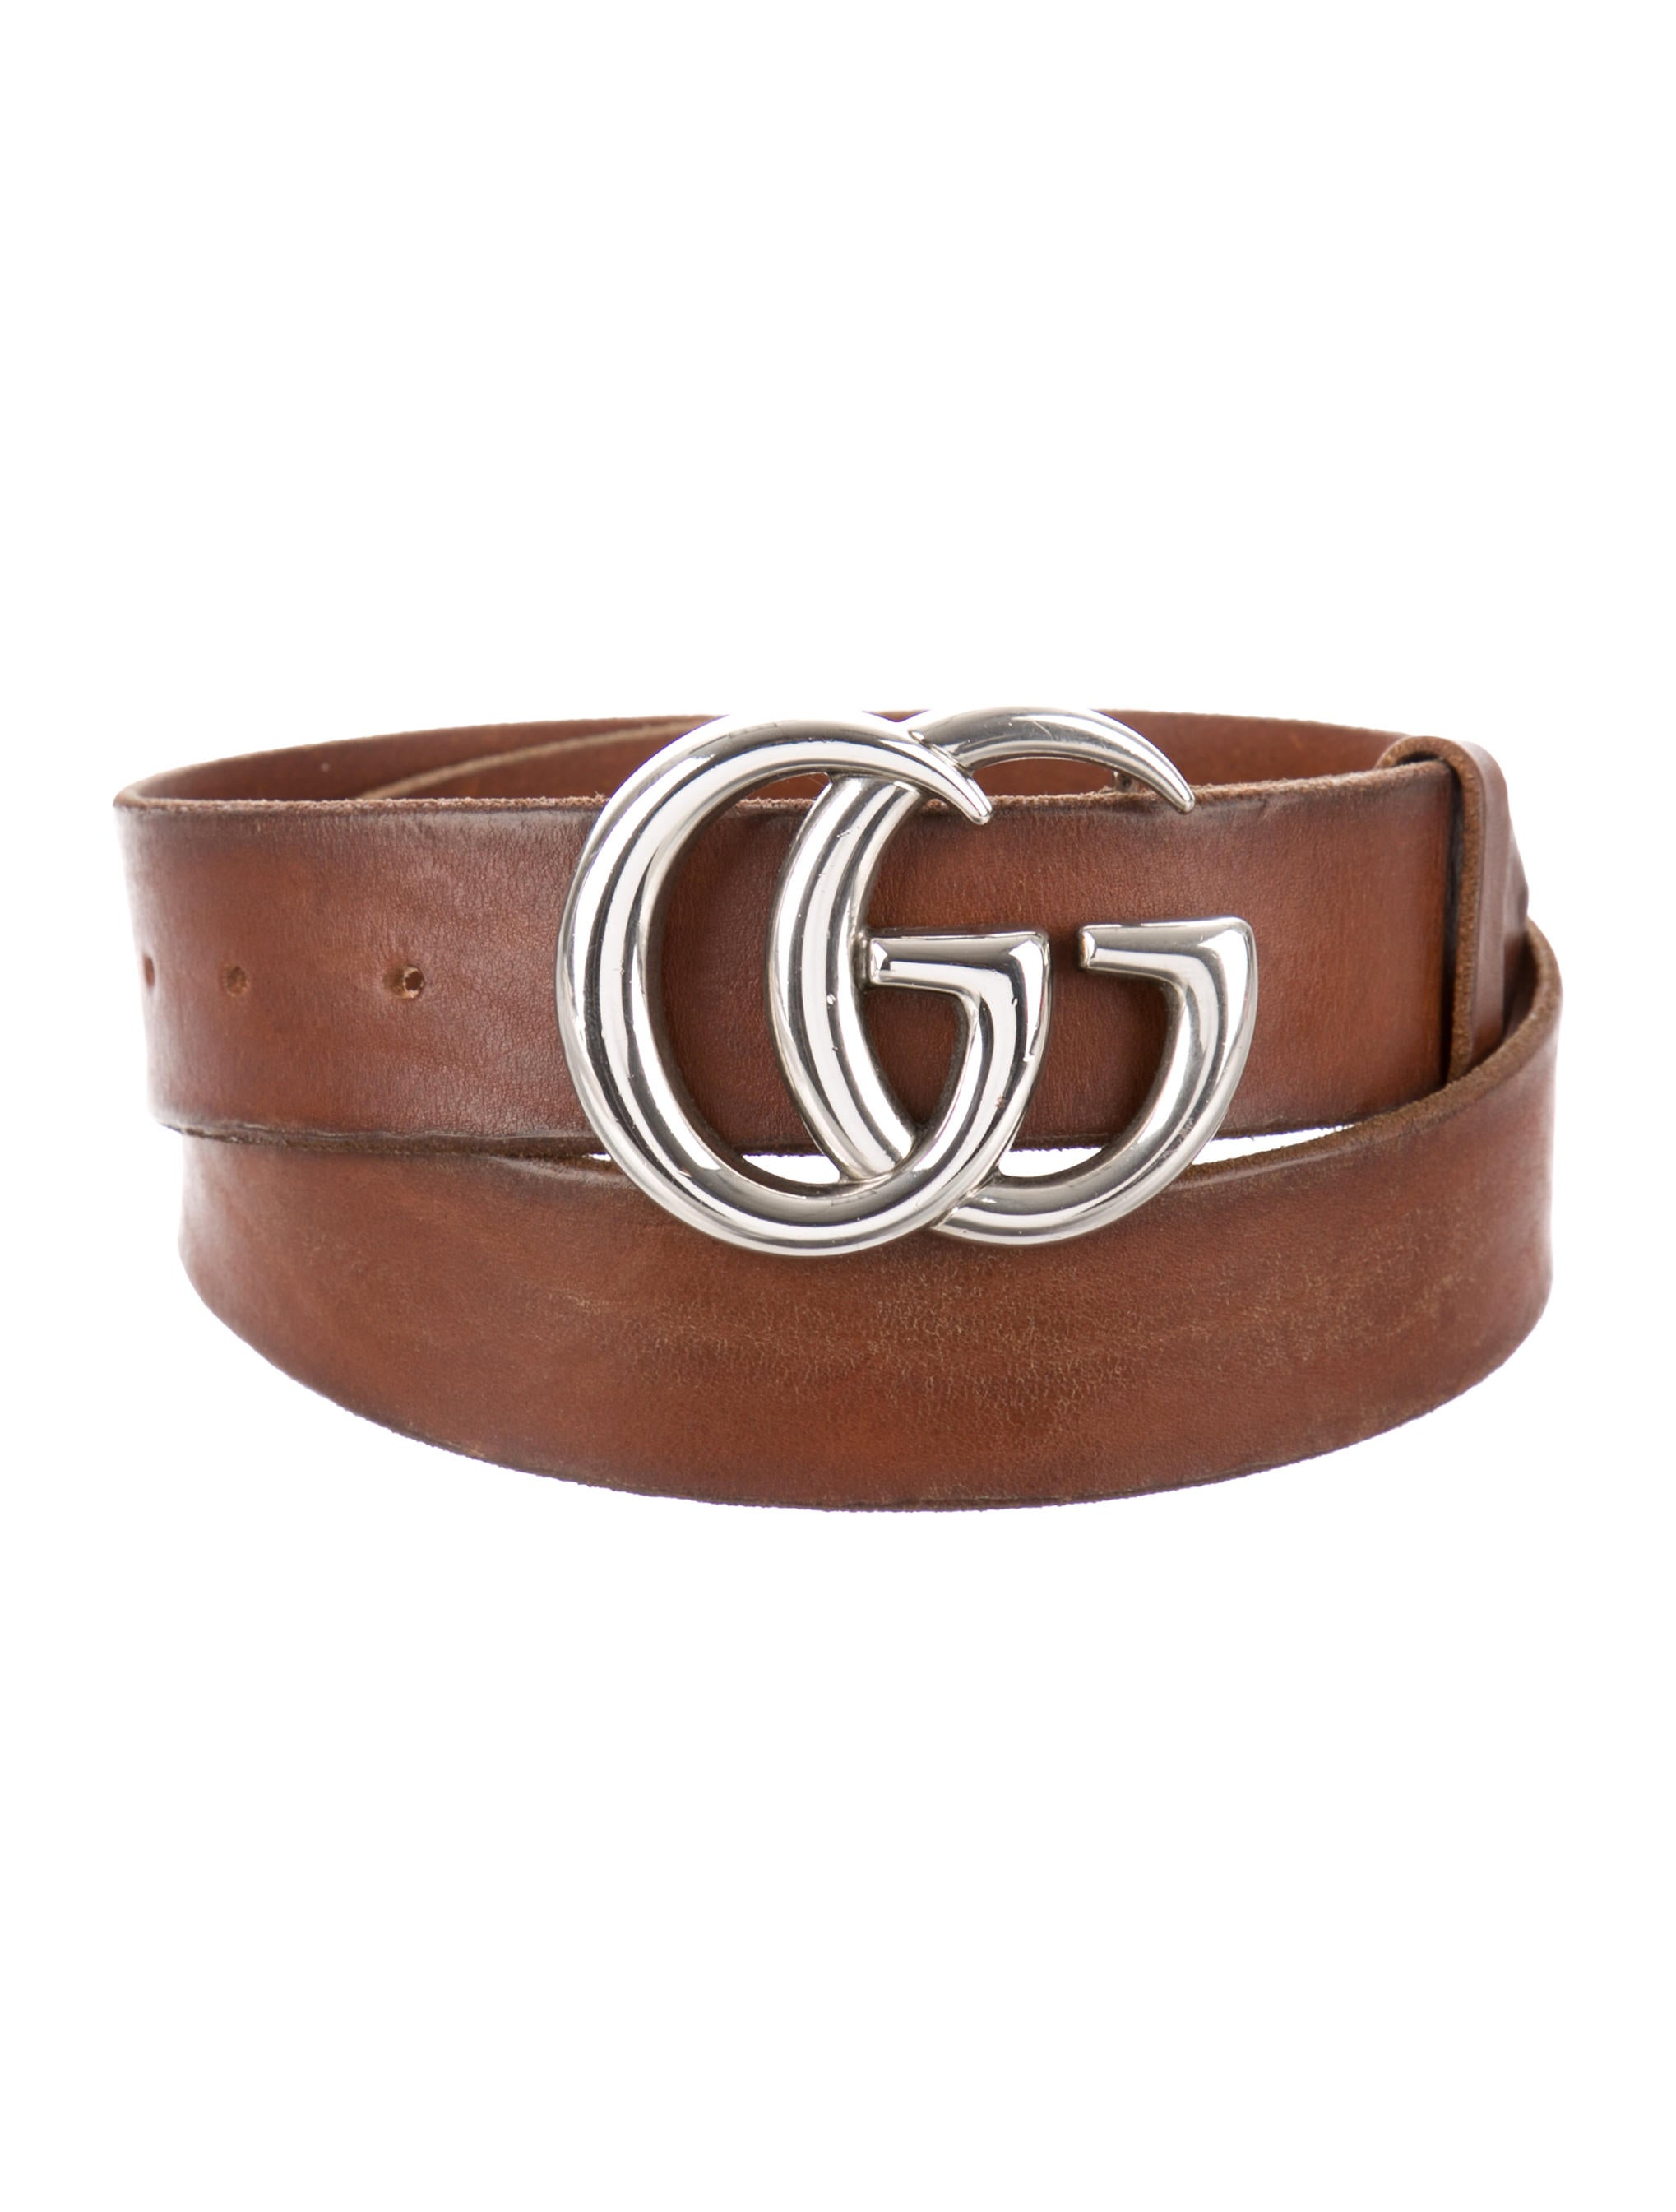 0dedcdcb6 Gucci Distressed Leather GG Belt - Accessories - GUC229109 | The ...